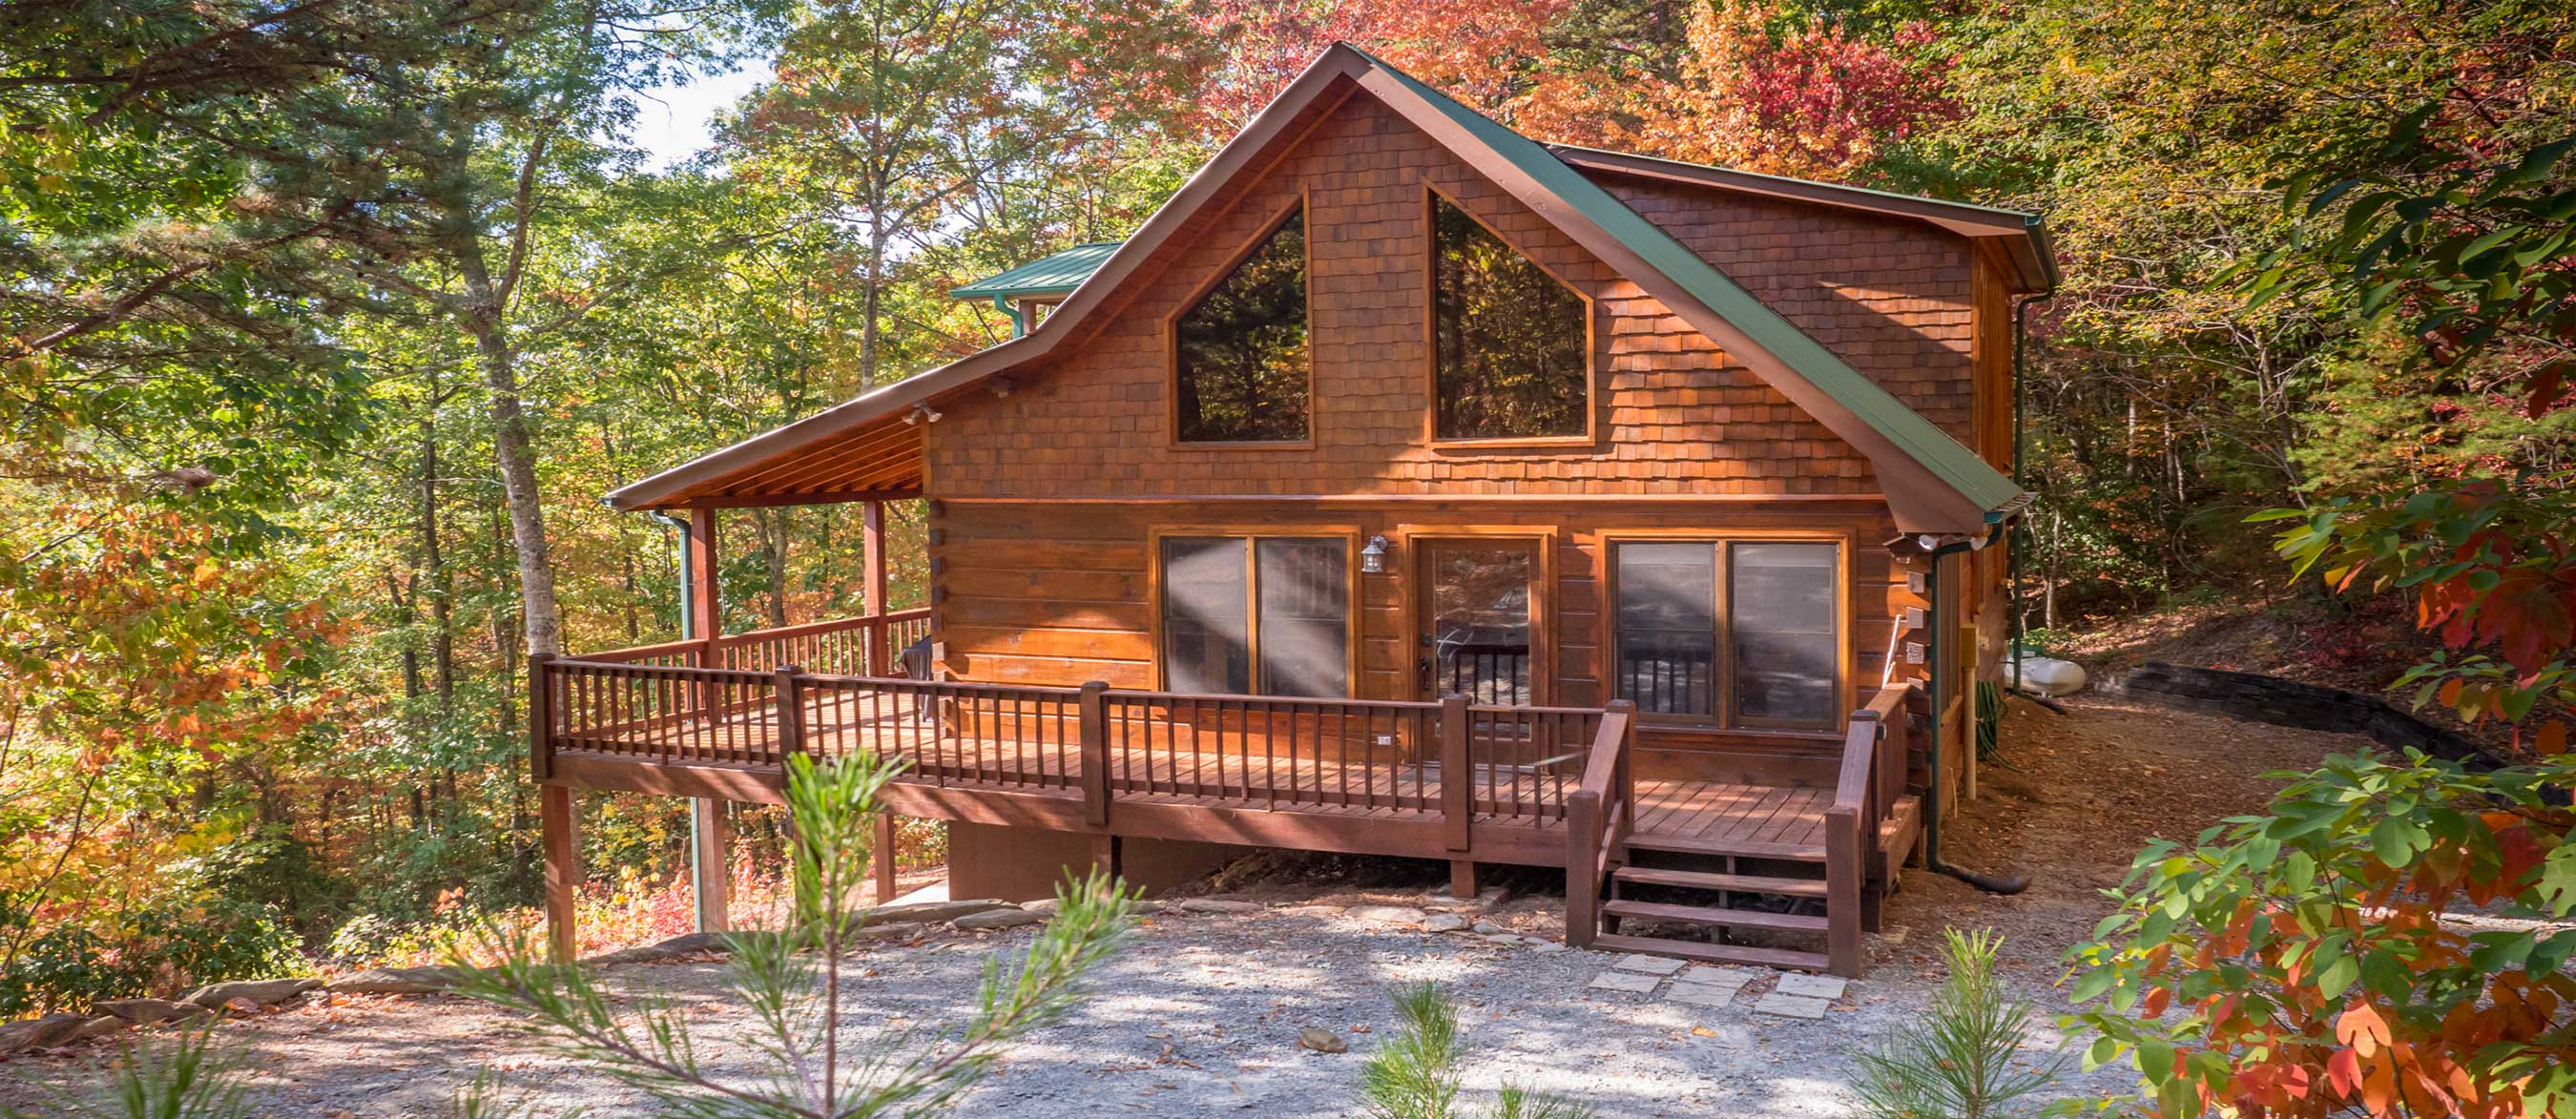 cabin georgia ga blue ridge rental rentals pinecrest in cabins